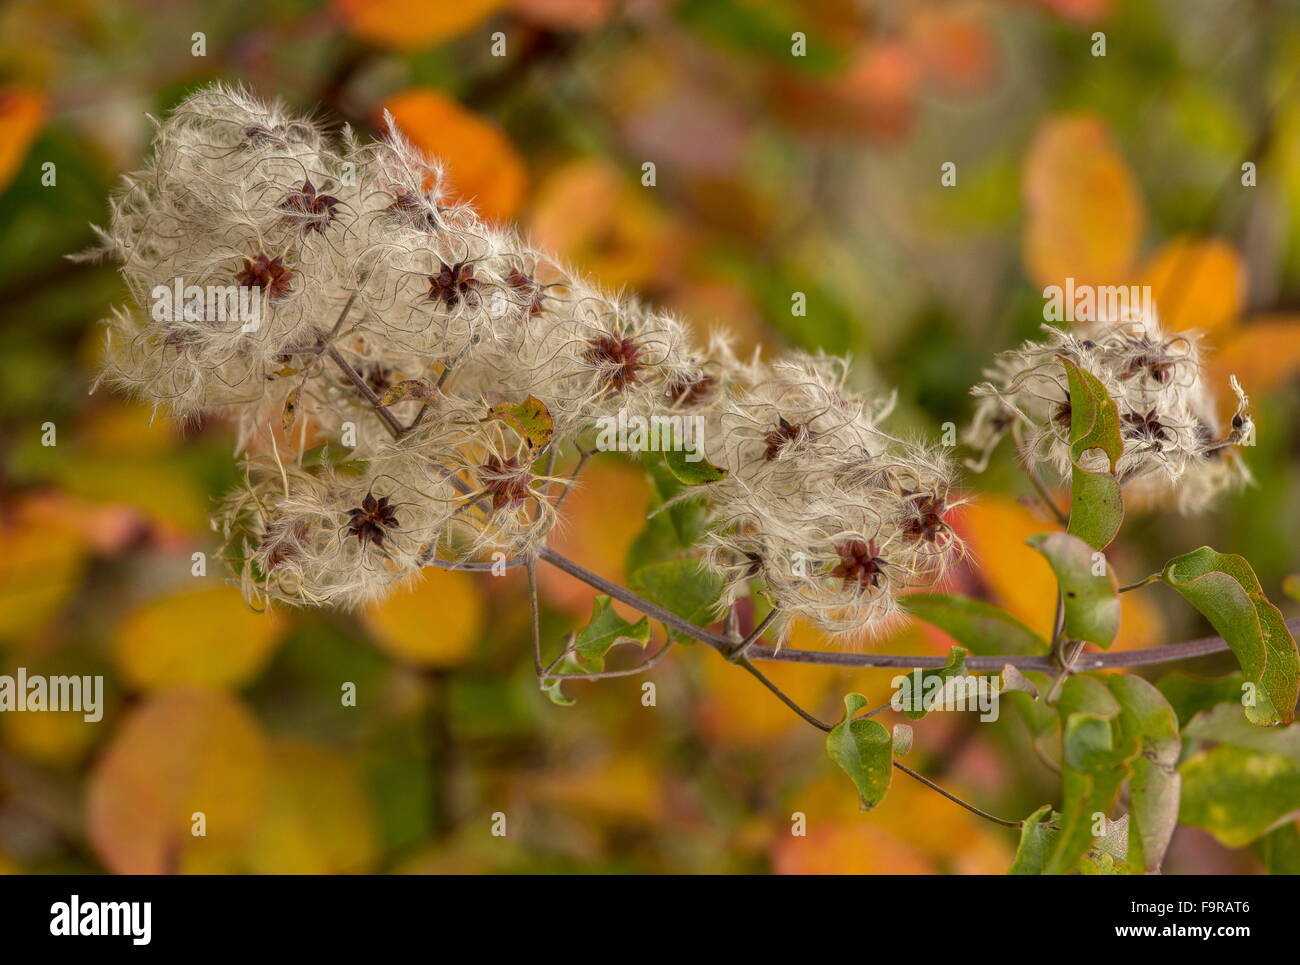 Traveller's-joy, Clematis vitalba in autumn colour and fruits, north Greece. - Stock Image